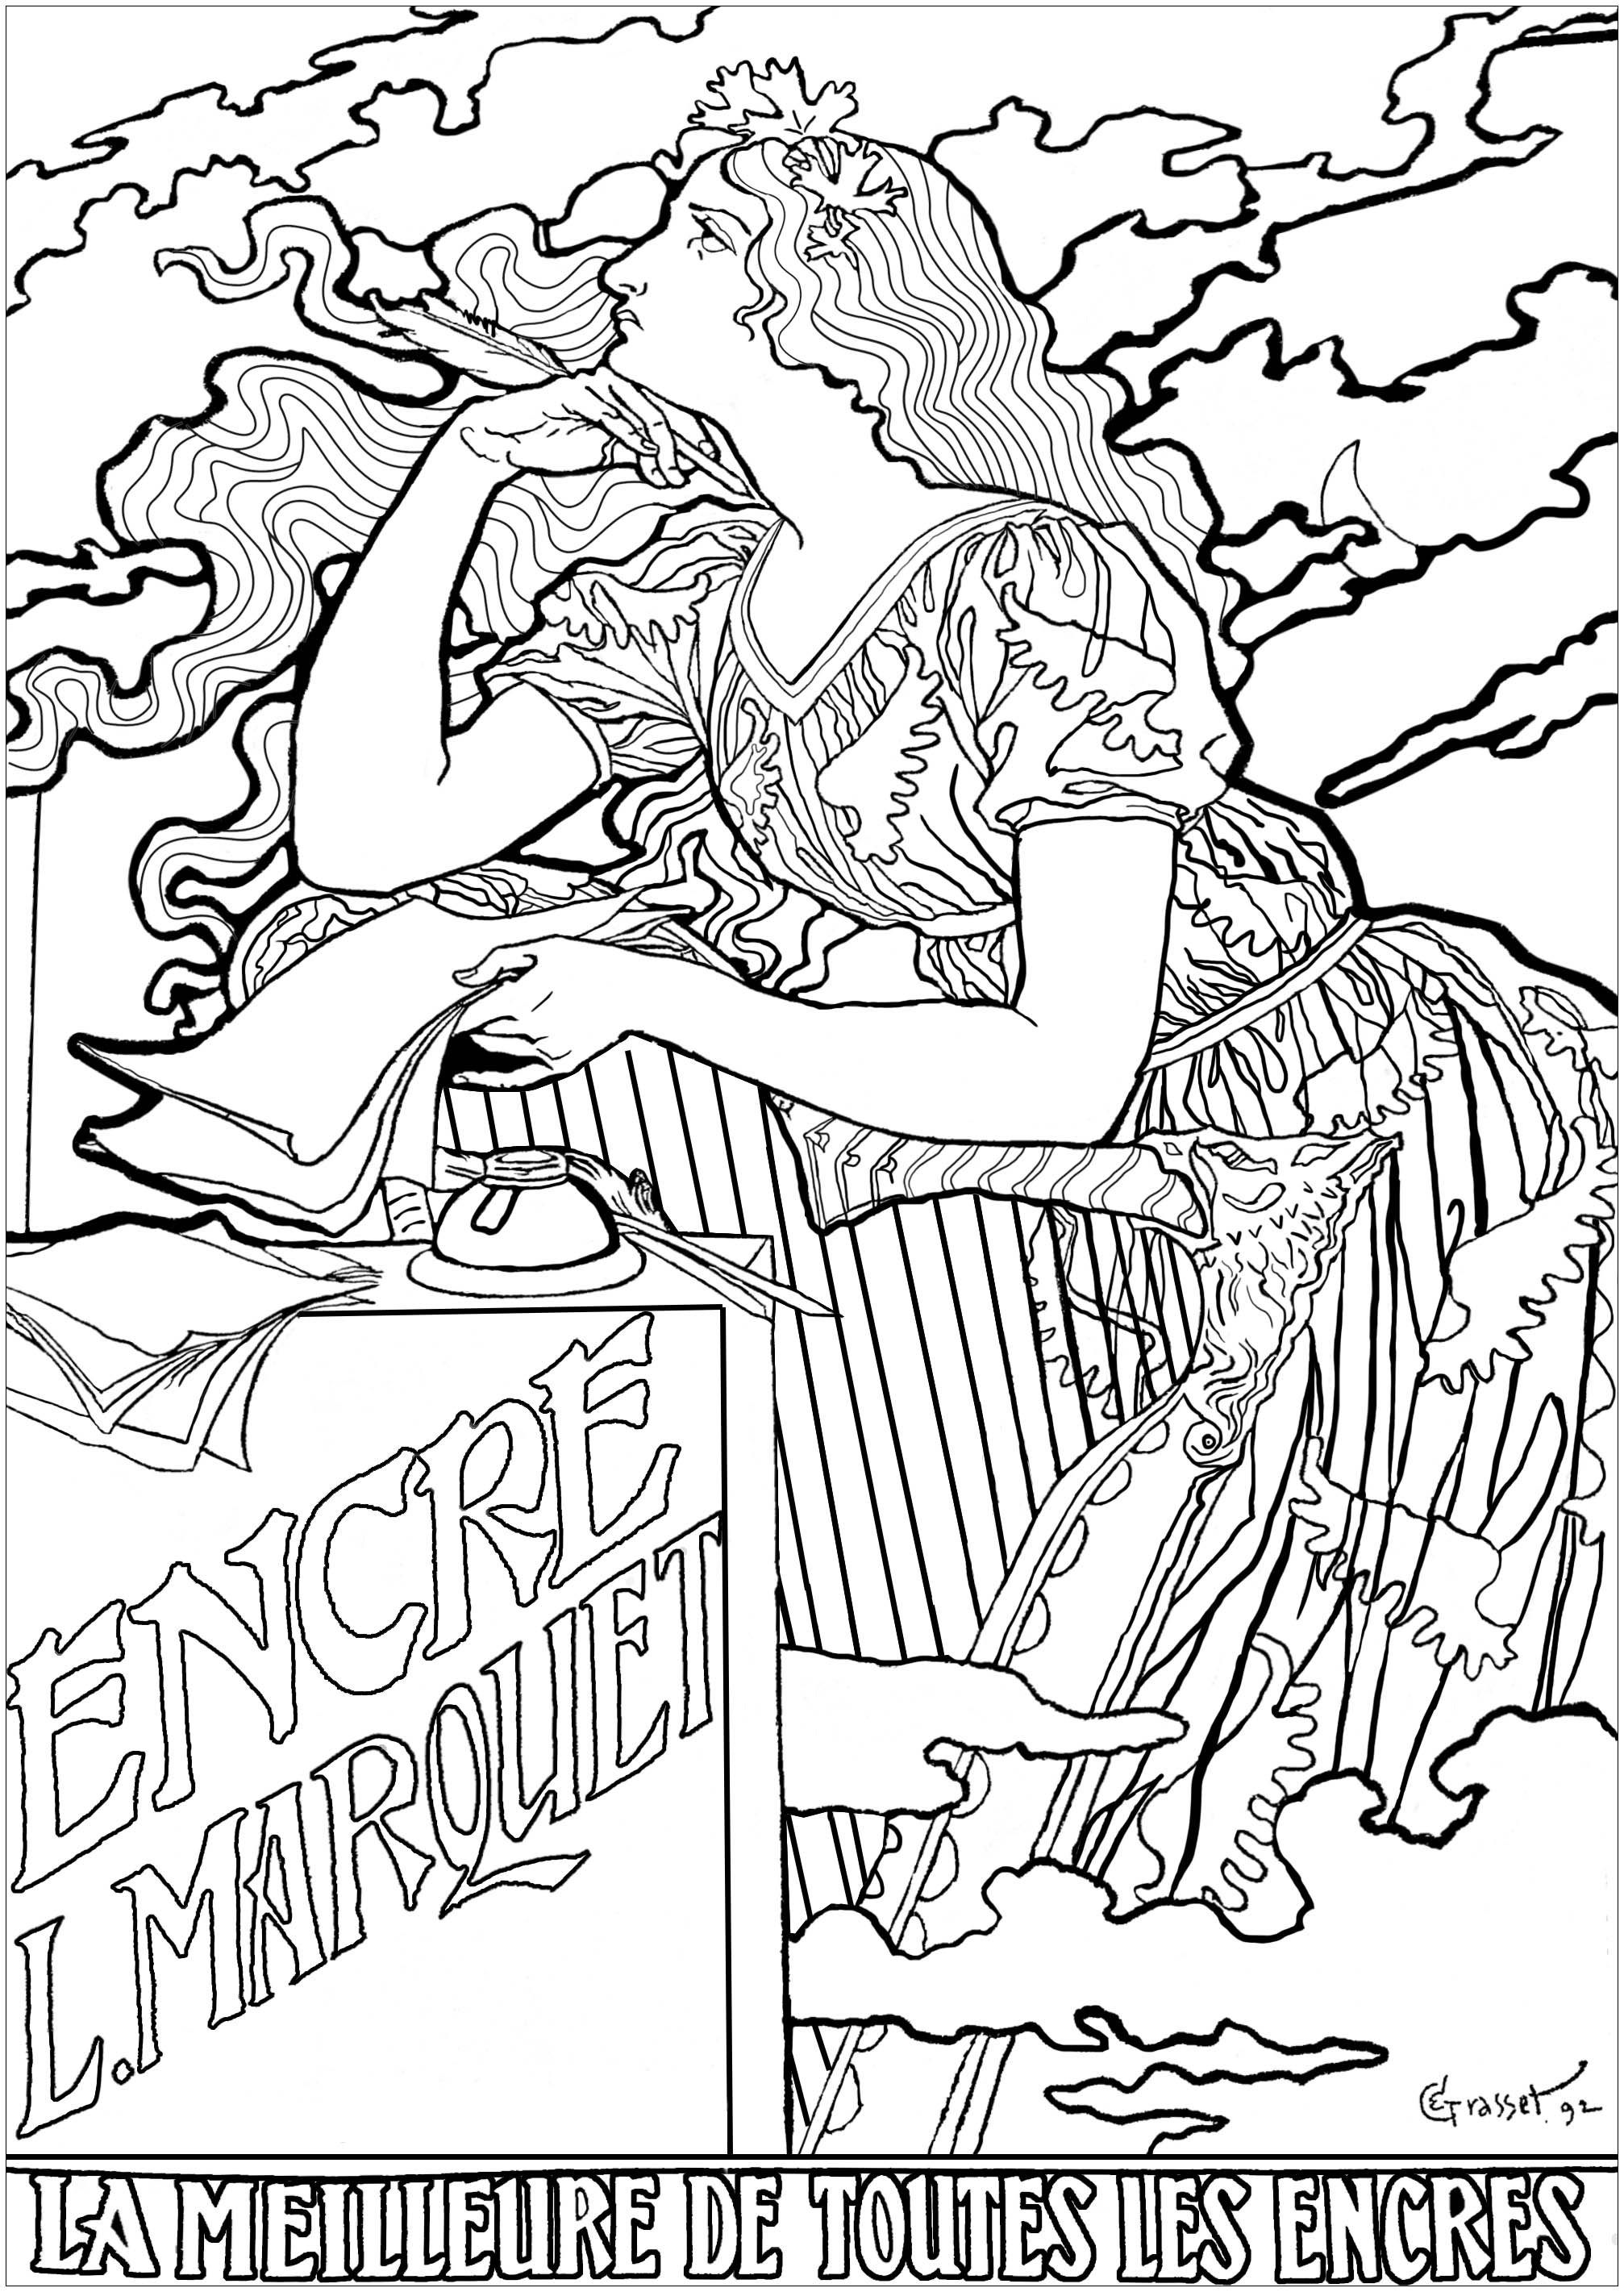 Coloring page created from an Advertising Poster by Eugene Grasset, for L. Marquet, an old Ink Brand (1892)